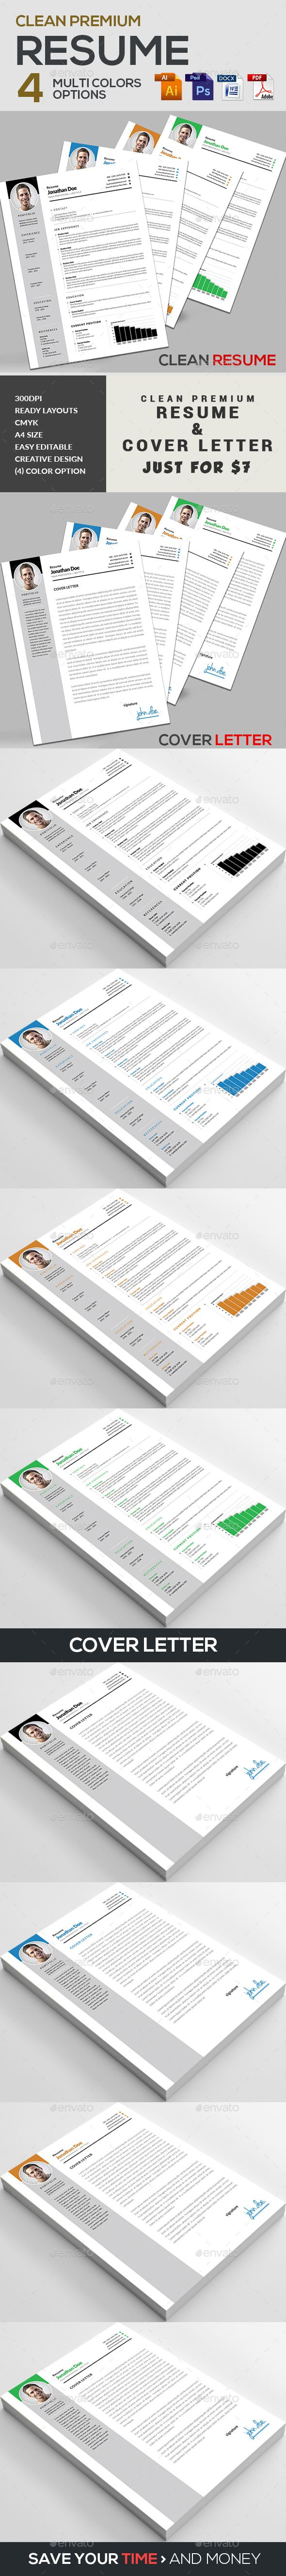 Clean Resume Download%0A Resume CV